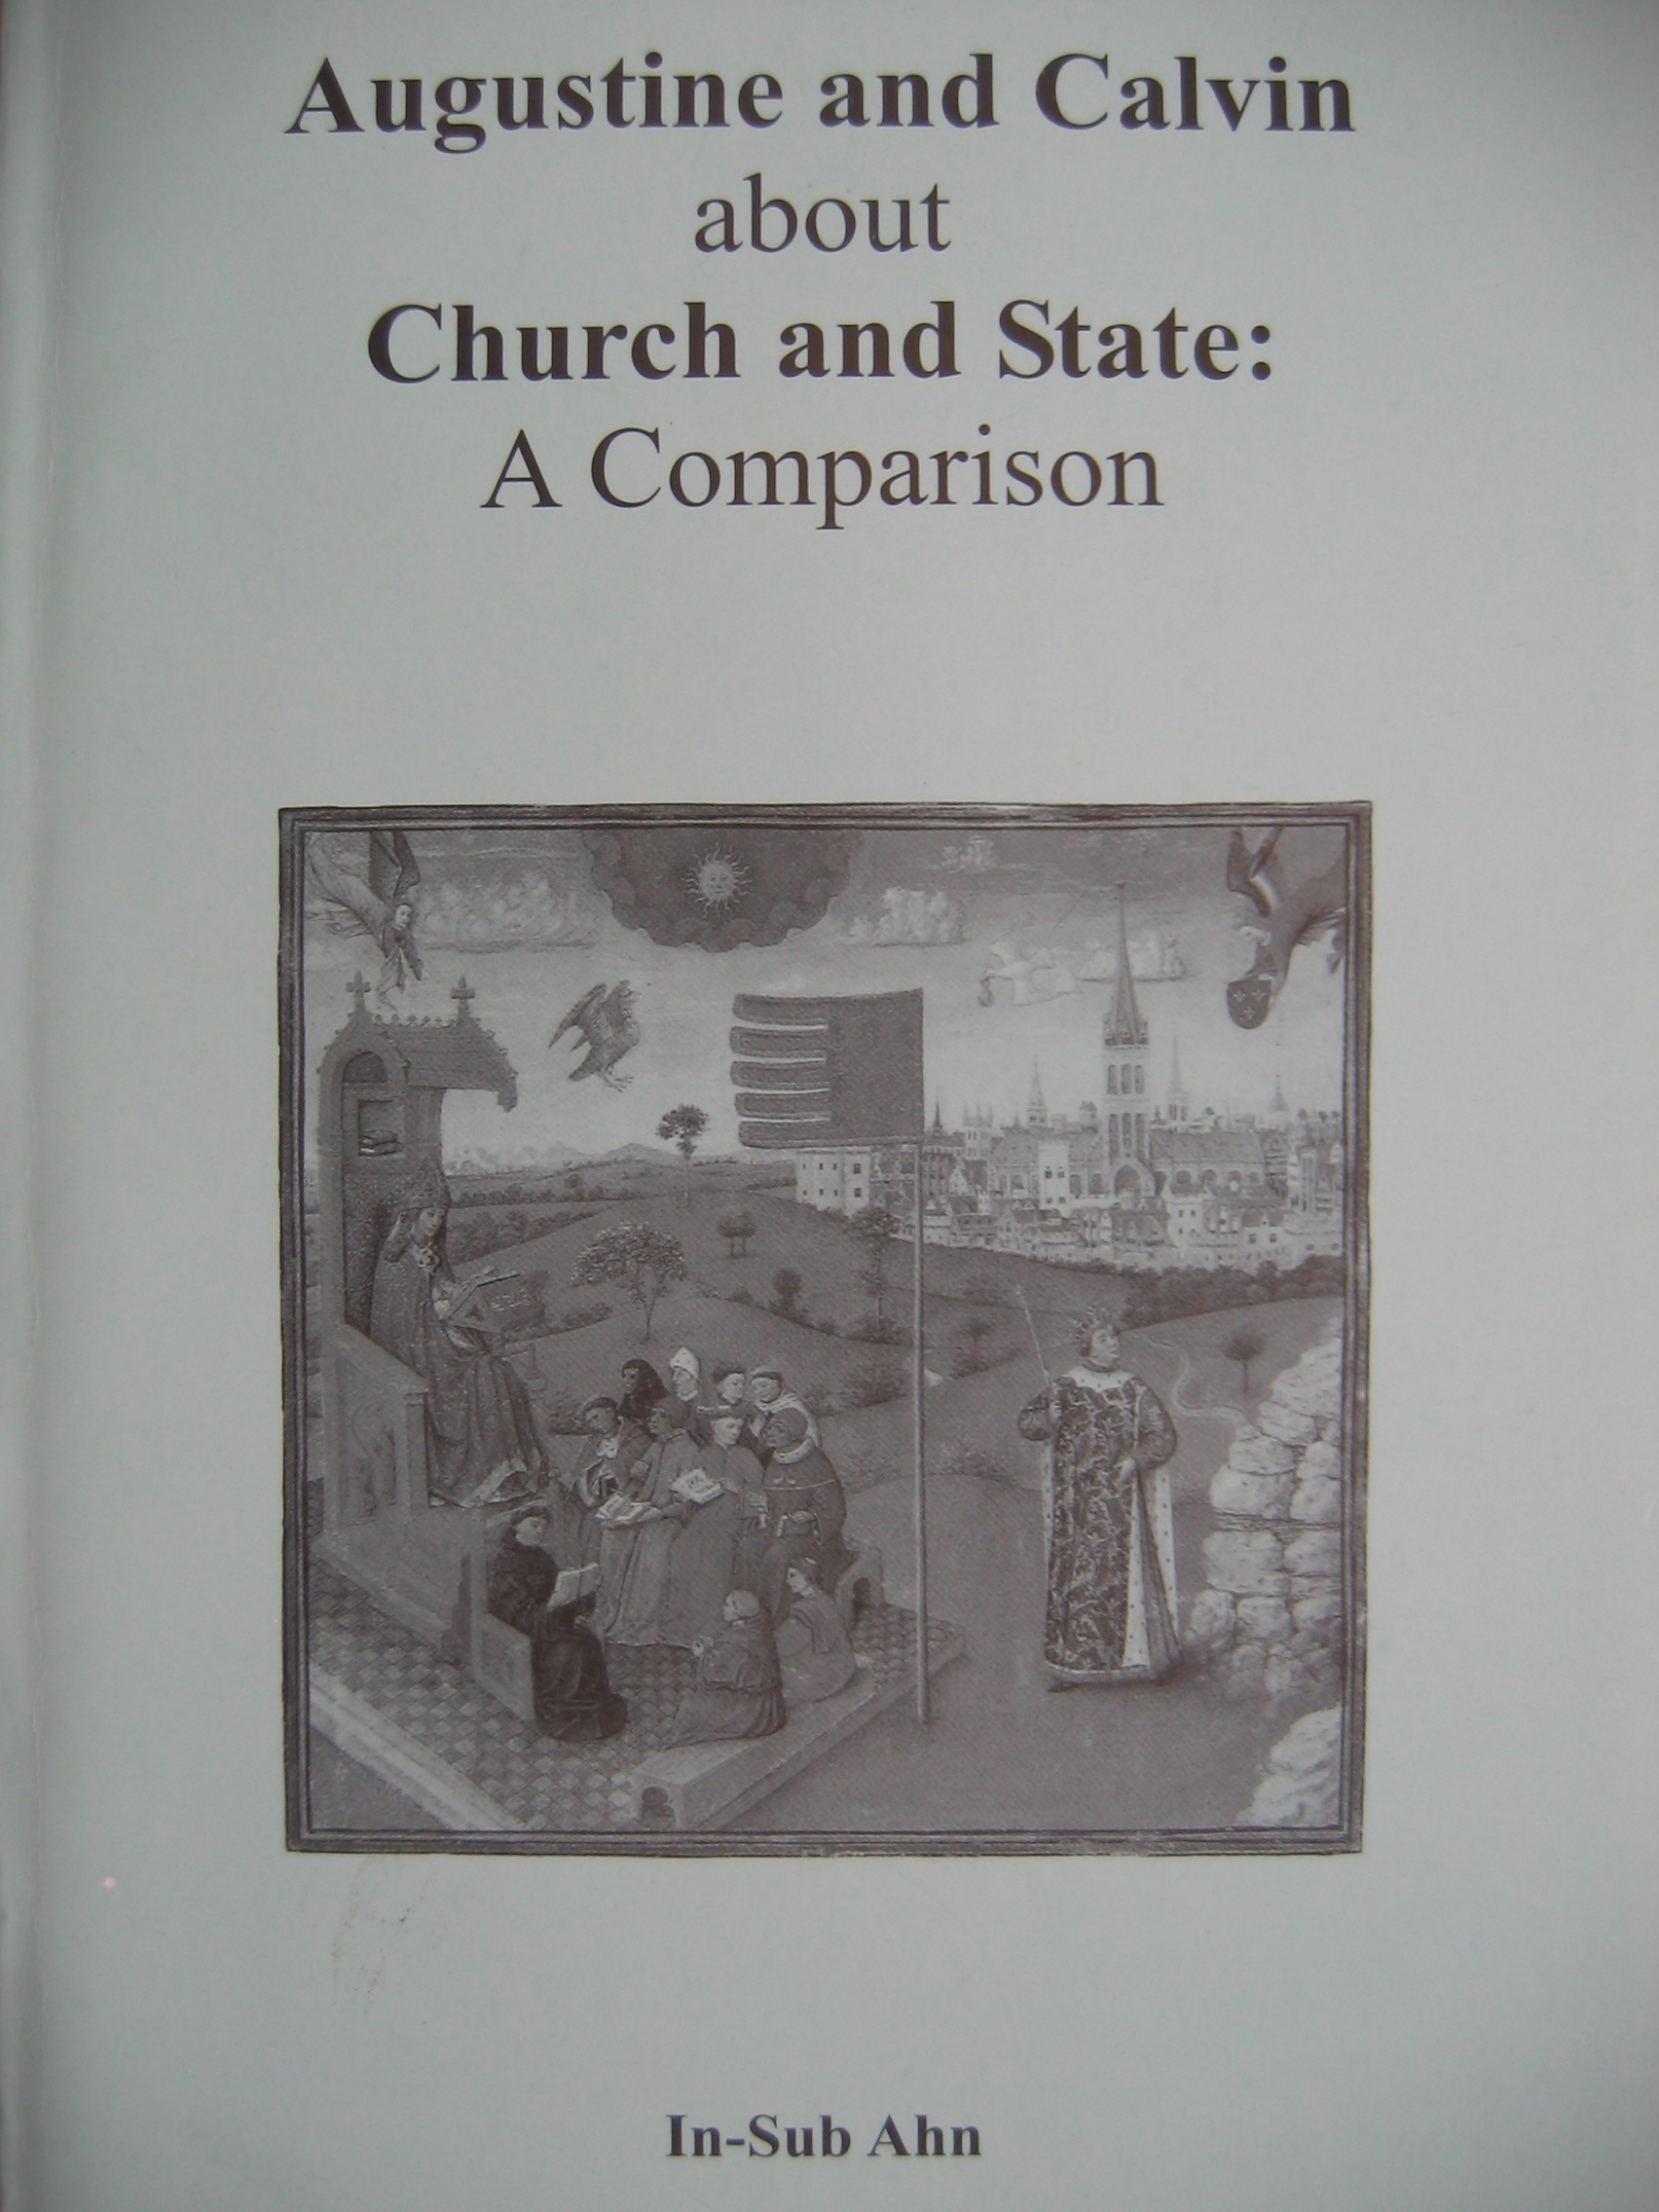 Augustine and Calvin about Church and State